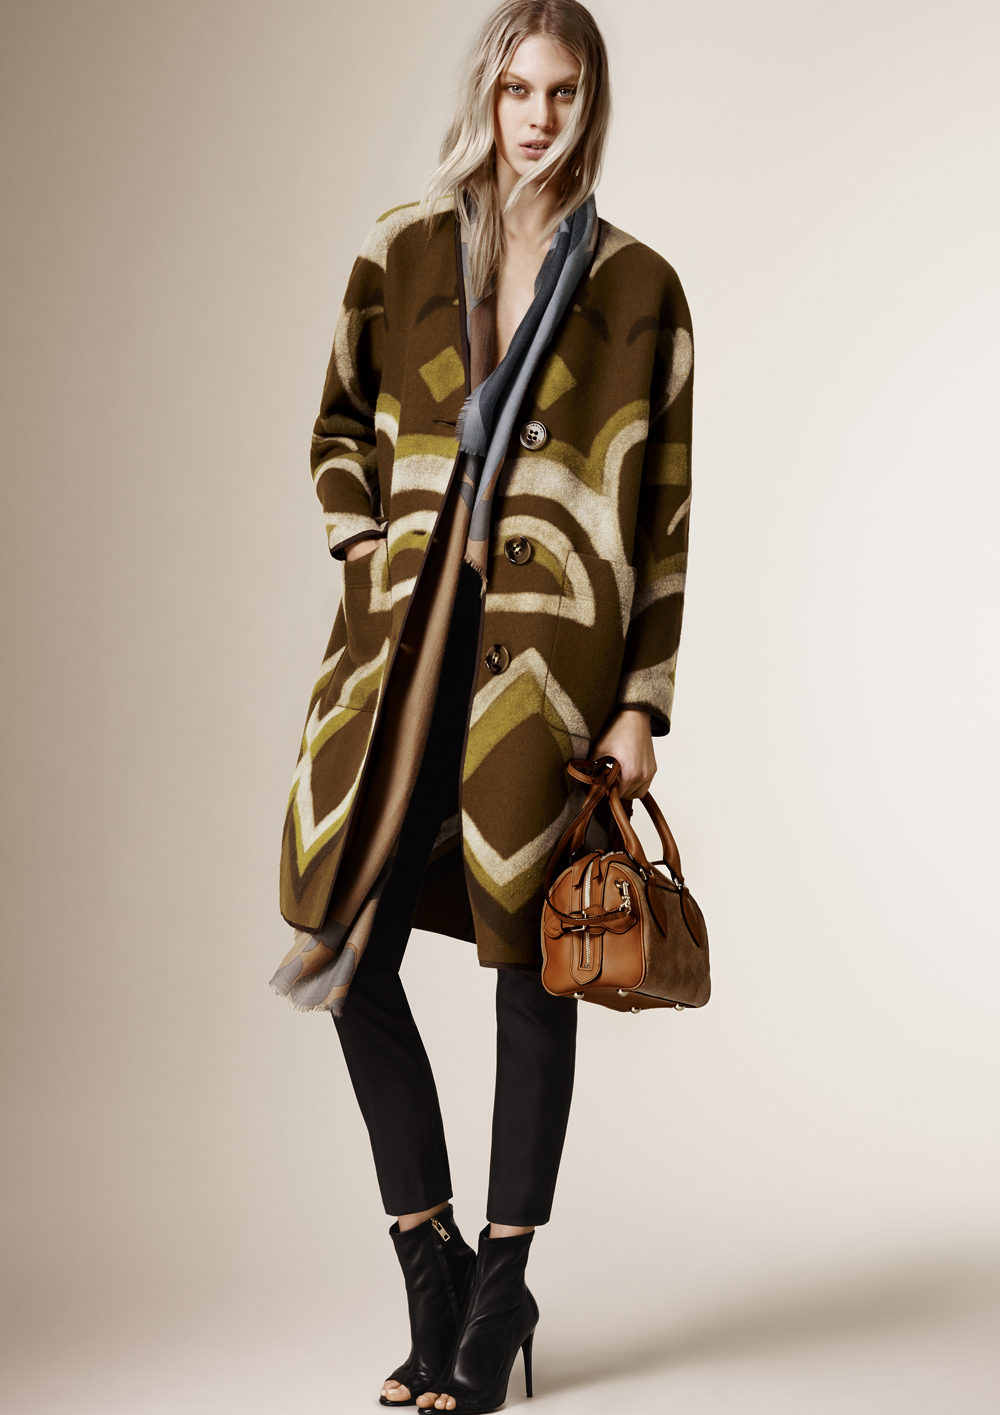 Burberry_Prorsum_Womenswear_Autumn_Winter_2015_Pre-Collection_03